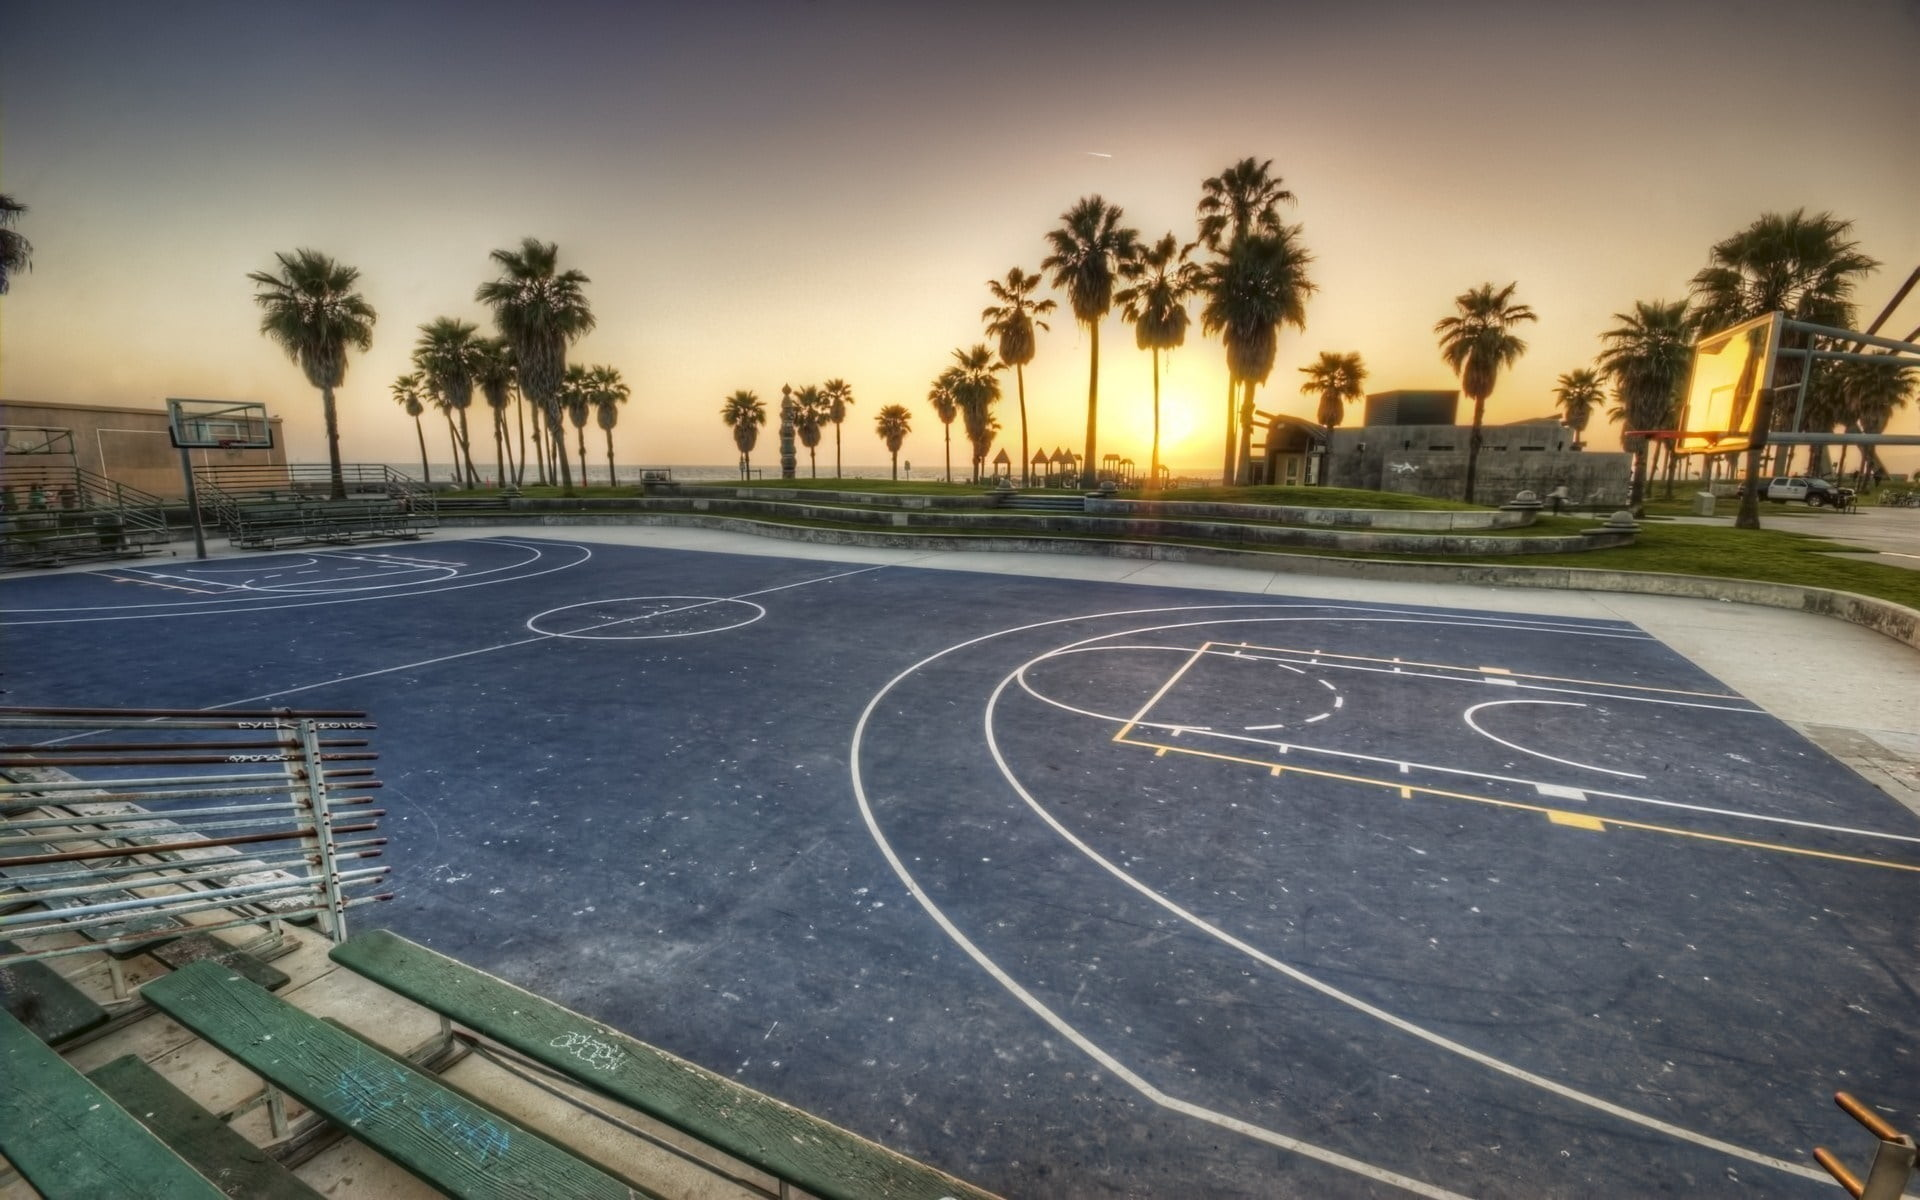 Basketball Court Wallpapers 69 Background Pictures